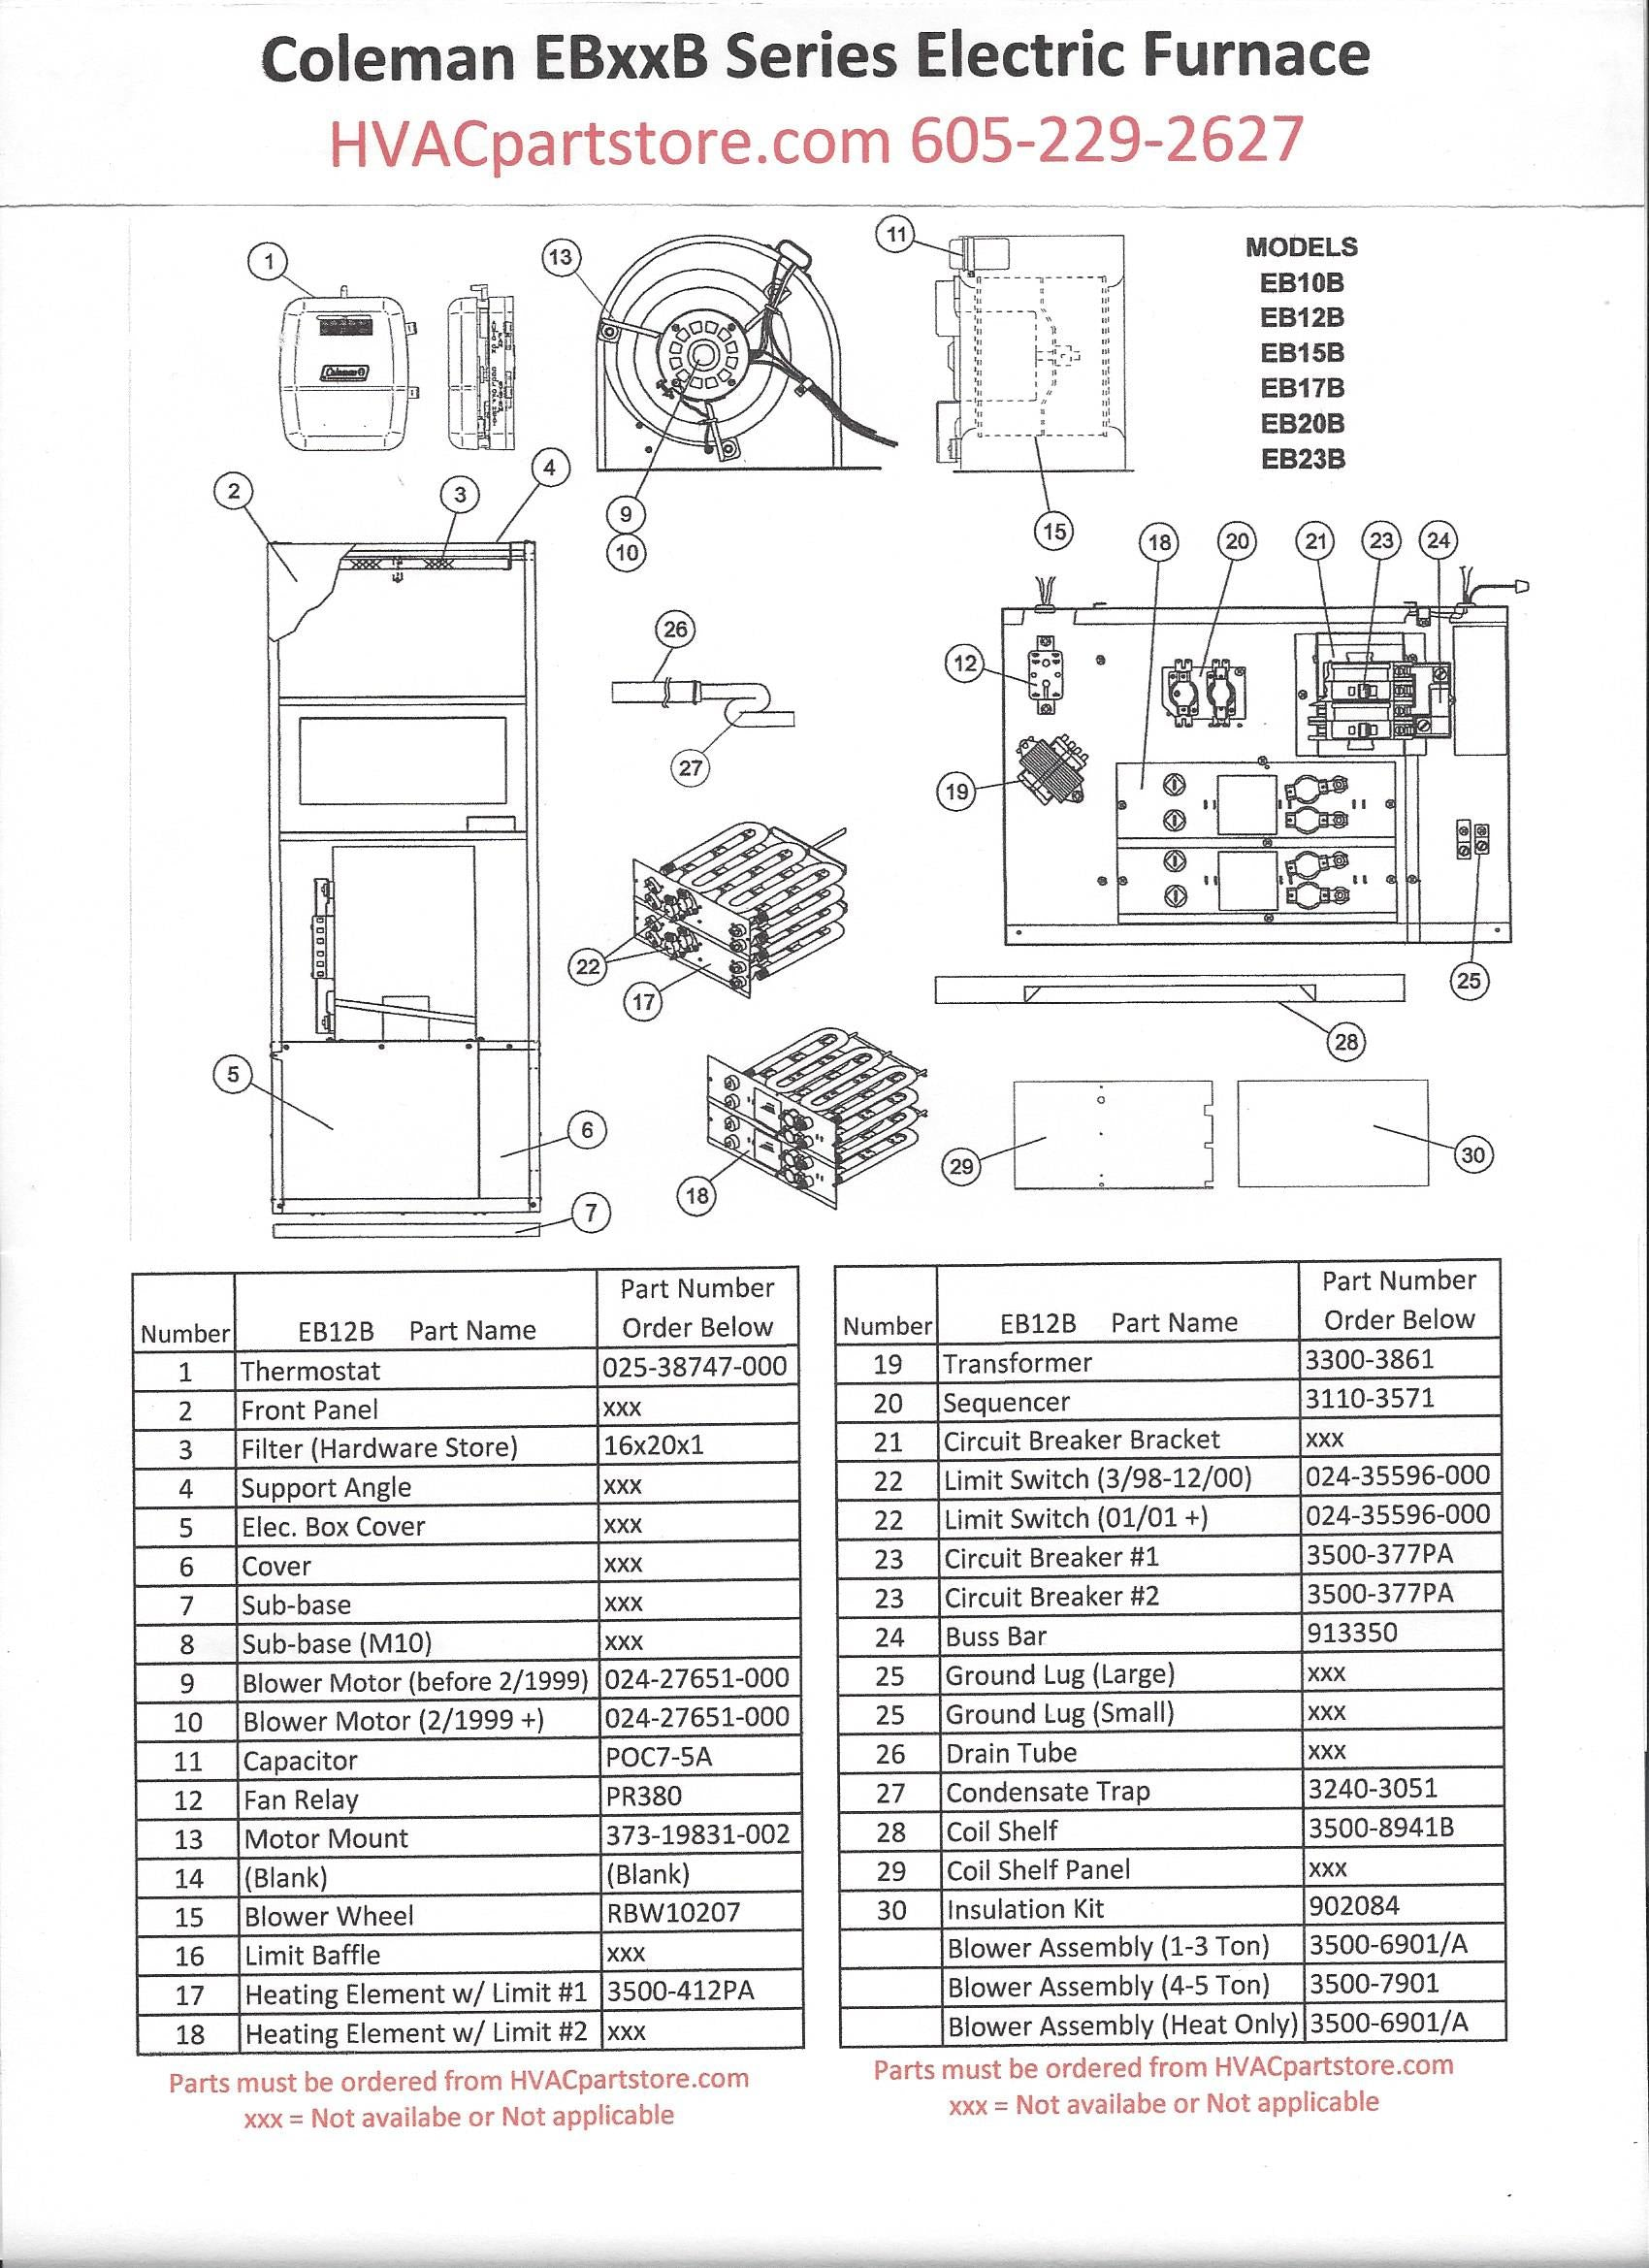 4g6e7 Saturn Brake Light Problems additionally Eb12b Coleman Electric Furnace Parts in addition Wiring Diagram For Freightliner Columbia 2007 The Wiring Diagram also Marine Wire Terminal Tech Specs also T1840397 Wiring diagram electric start dtr 125. on rv hvac wiring diagram